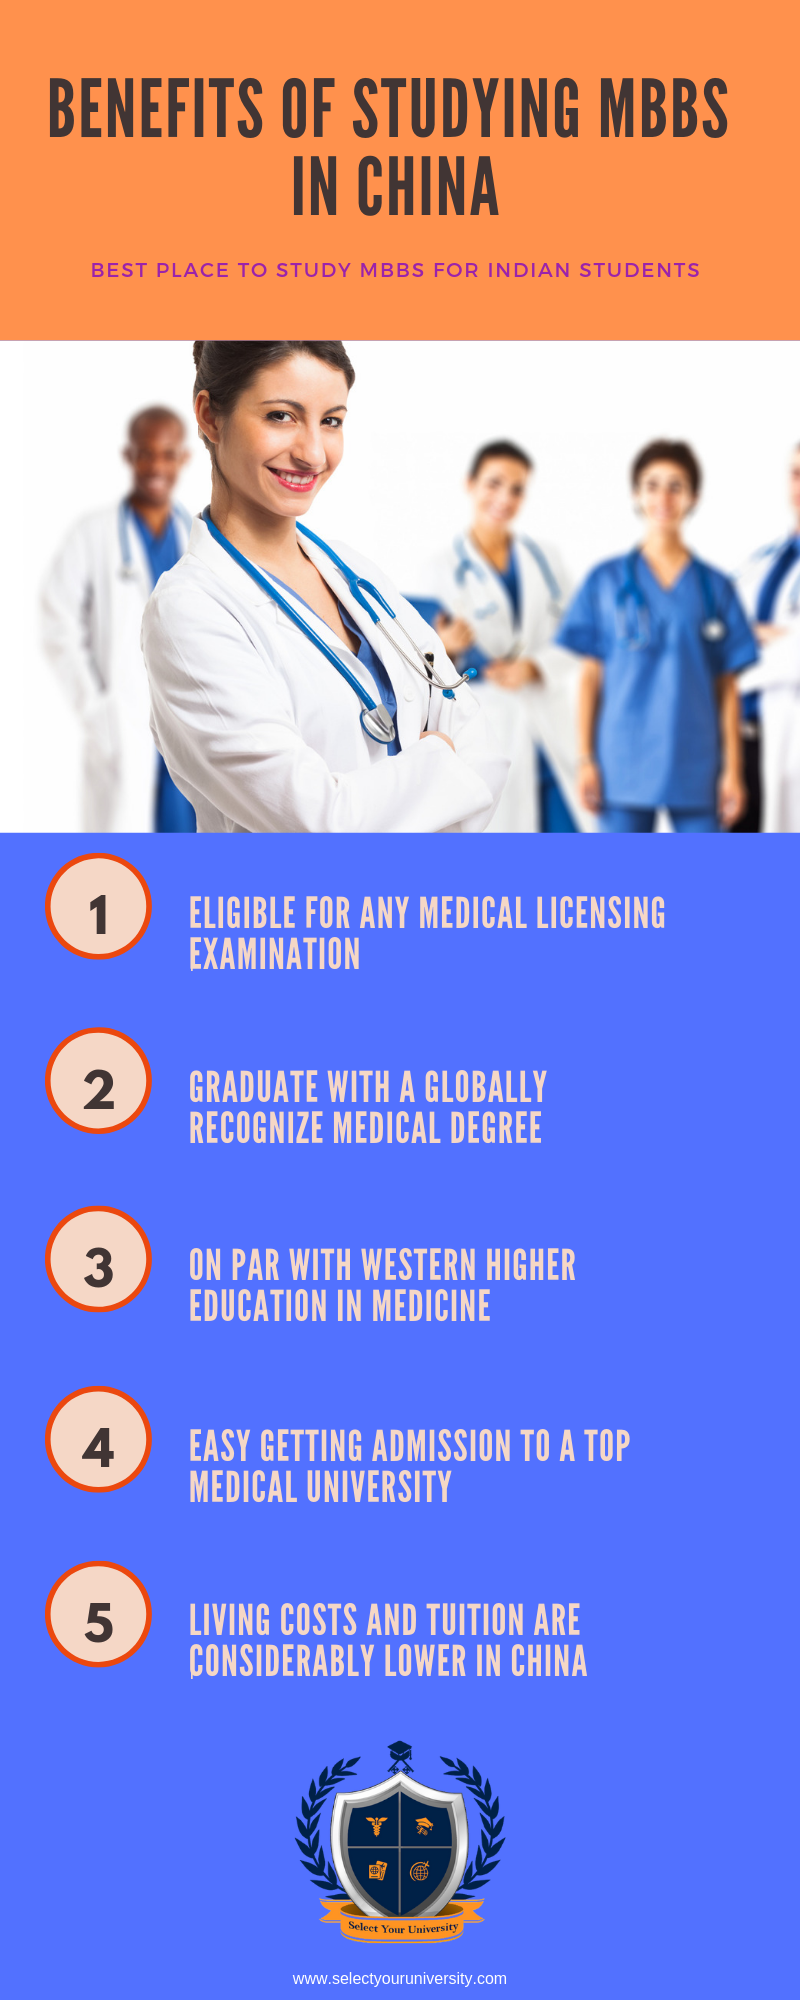 Want to study MBBS in China? Here are some of the benefits